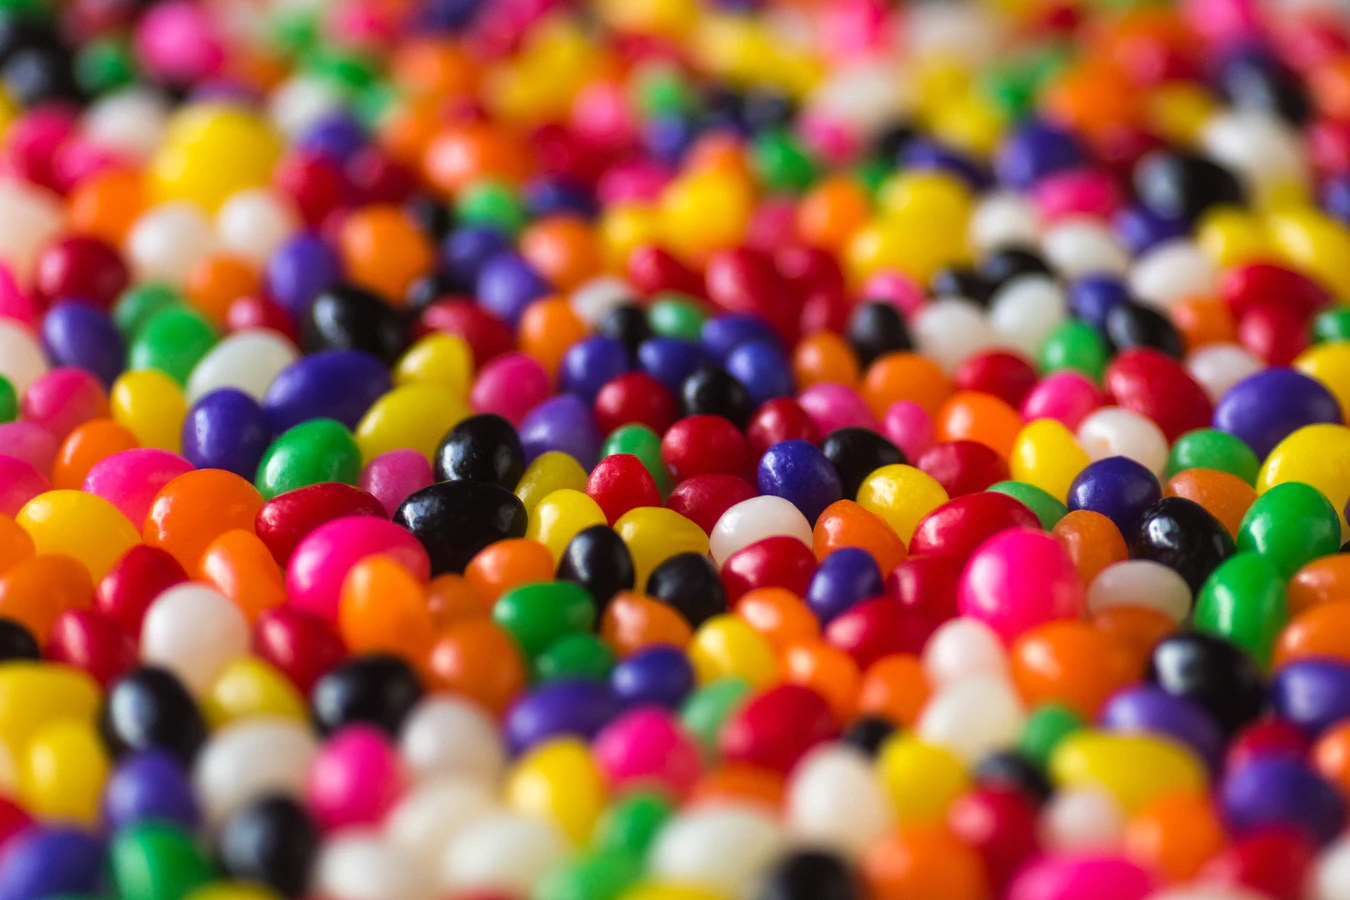 A lot of brightly colored jelly beans.